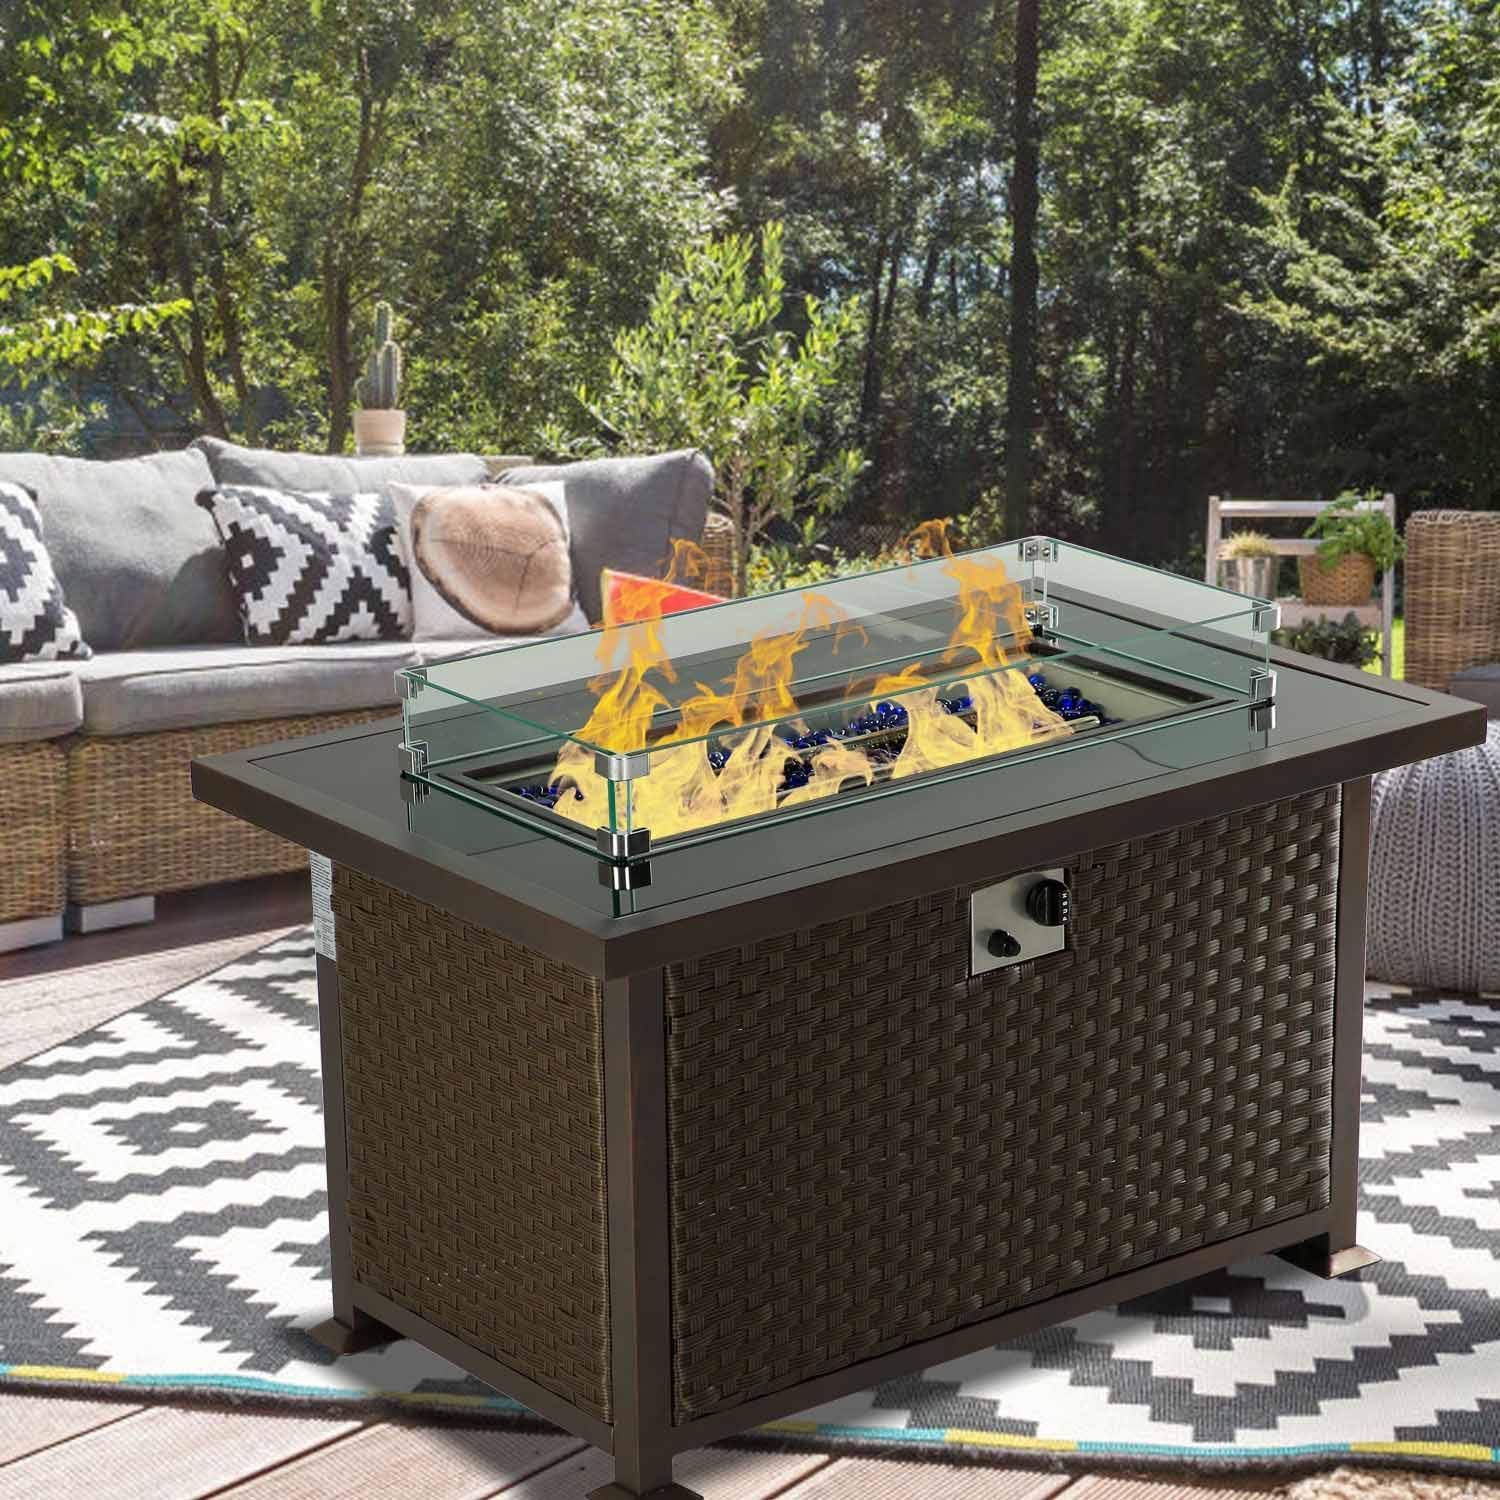 erommy 44 inch outdoor propane fire pit table 50 000 btu gas fire pit table wicker pe rattan with glass wind guard clear glass rocks cover brown